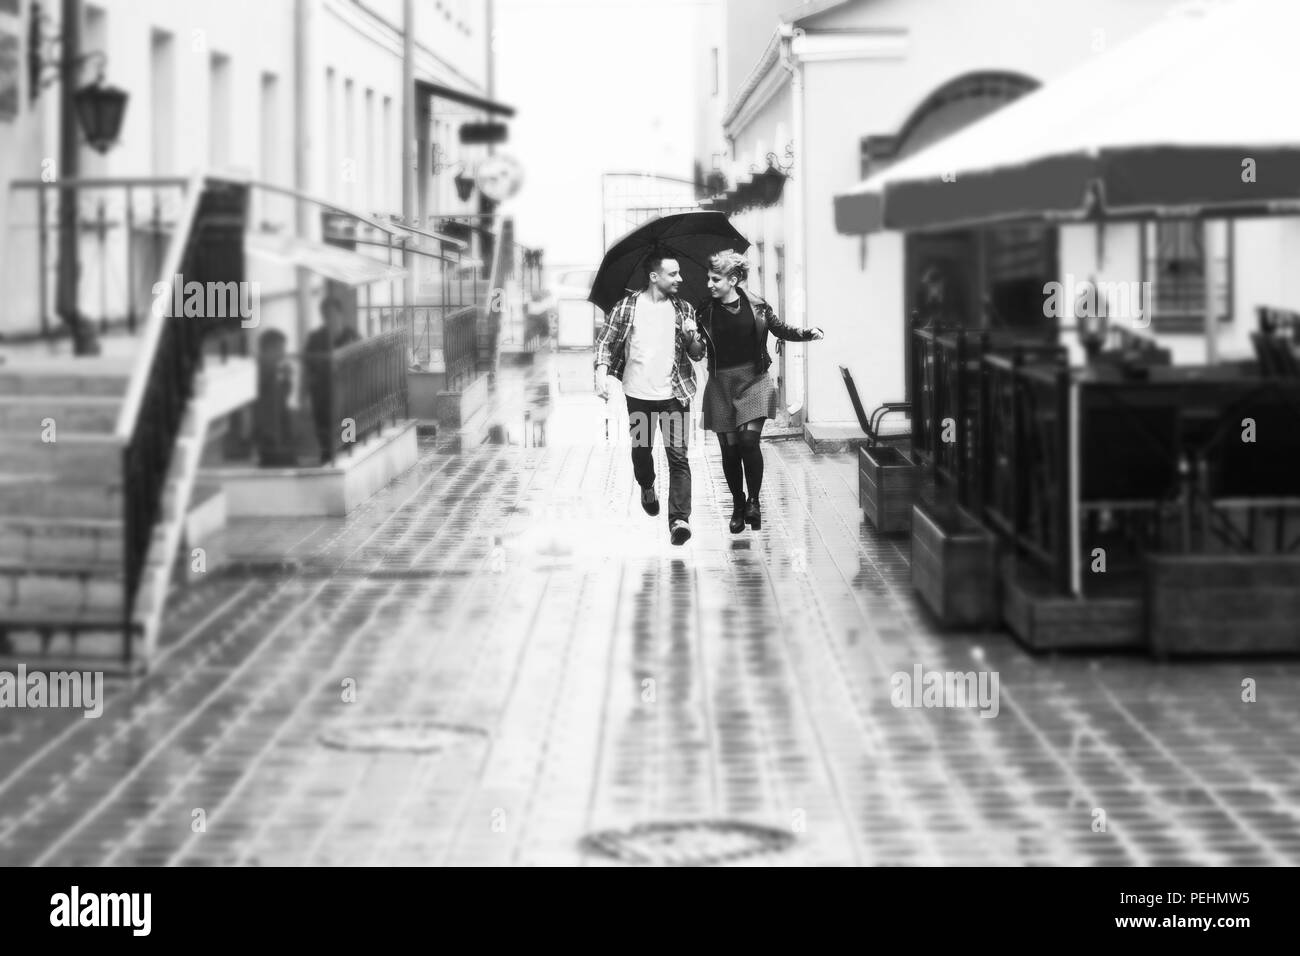 concept of love: loving couple under an umbrella walking down the street of the city.black-and-white photo in retro style - Stock Image